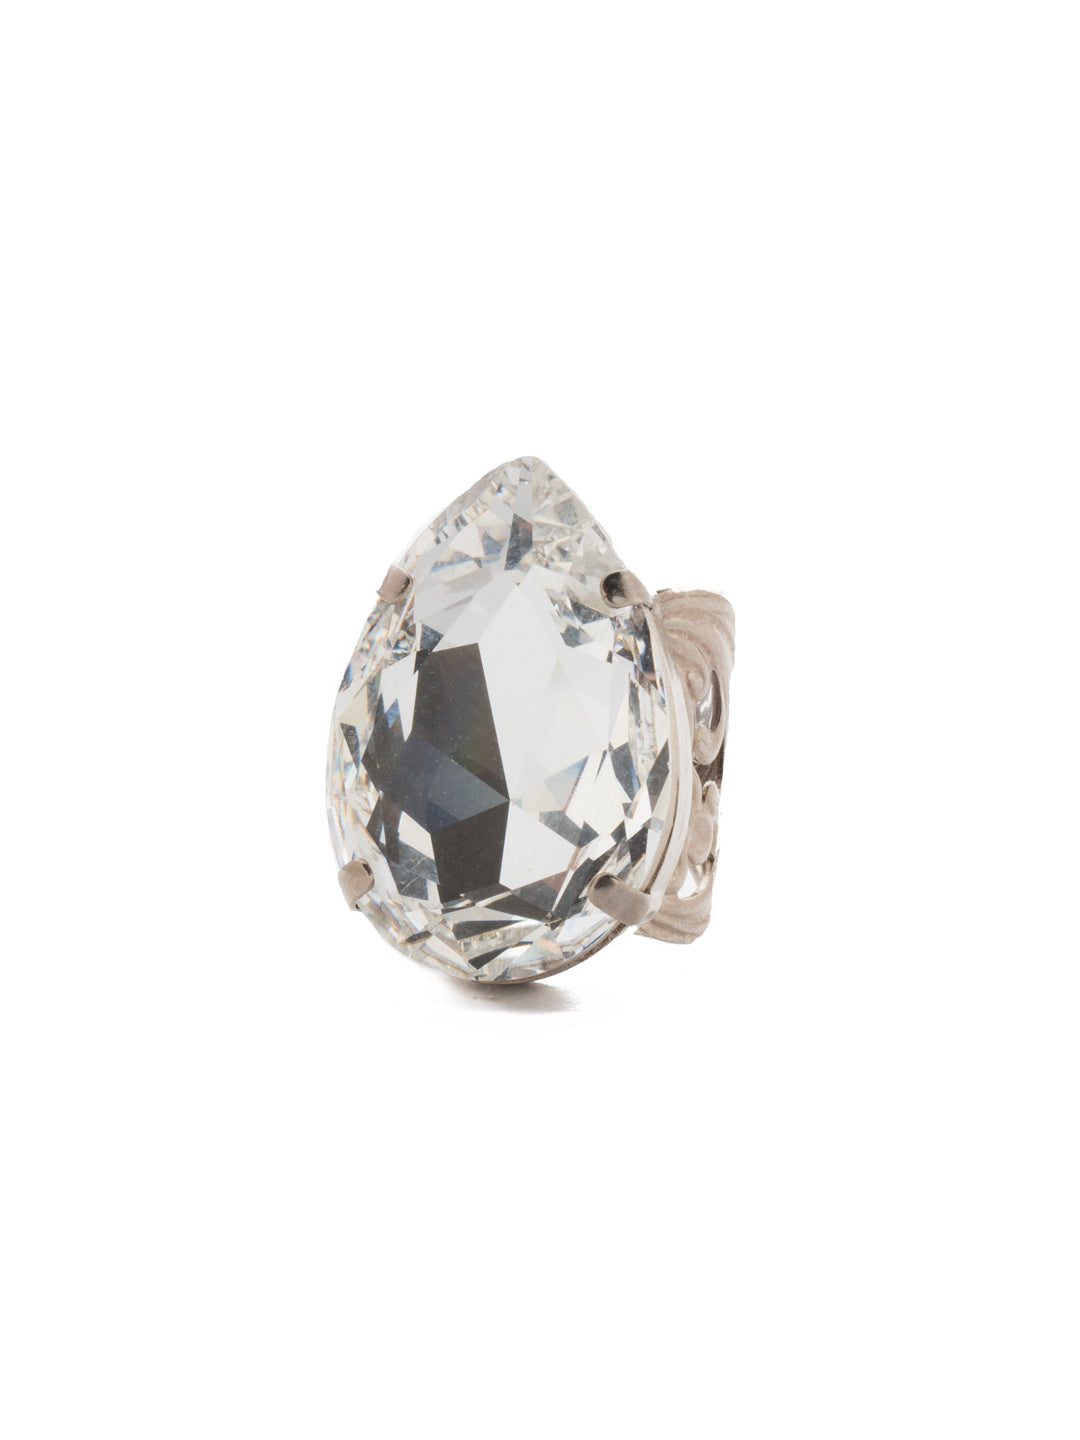 Teardrop Cocktail Ring - RCM25ASGLC